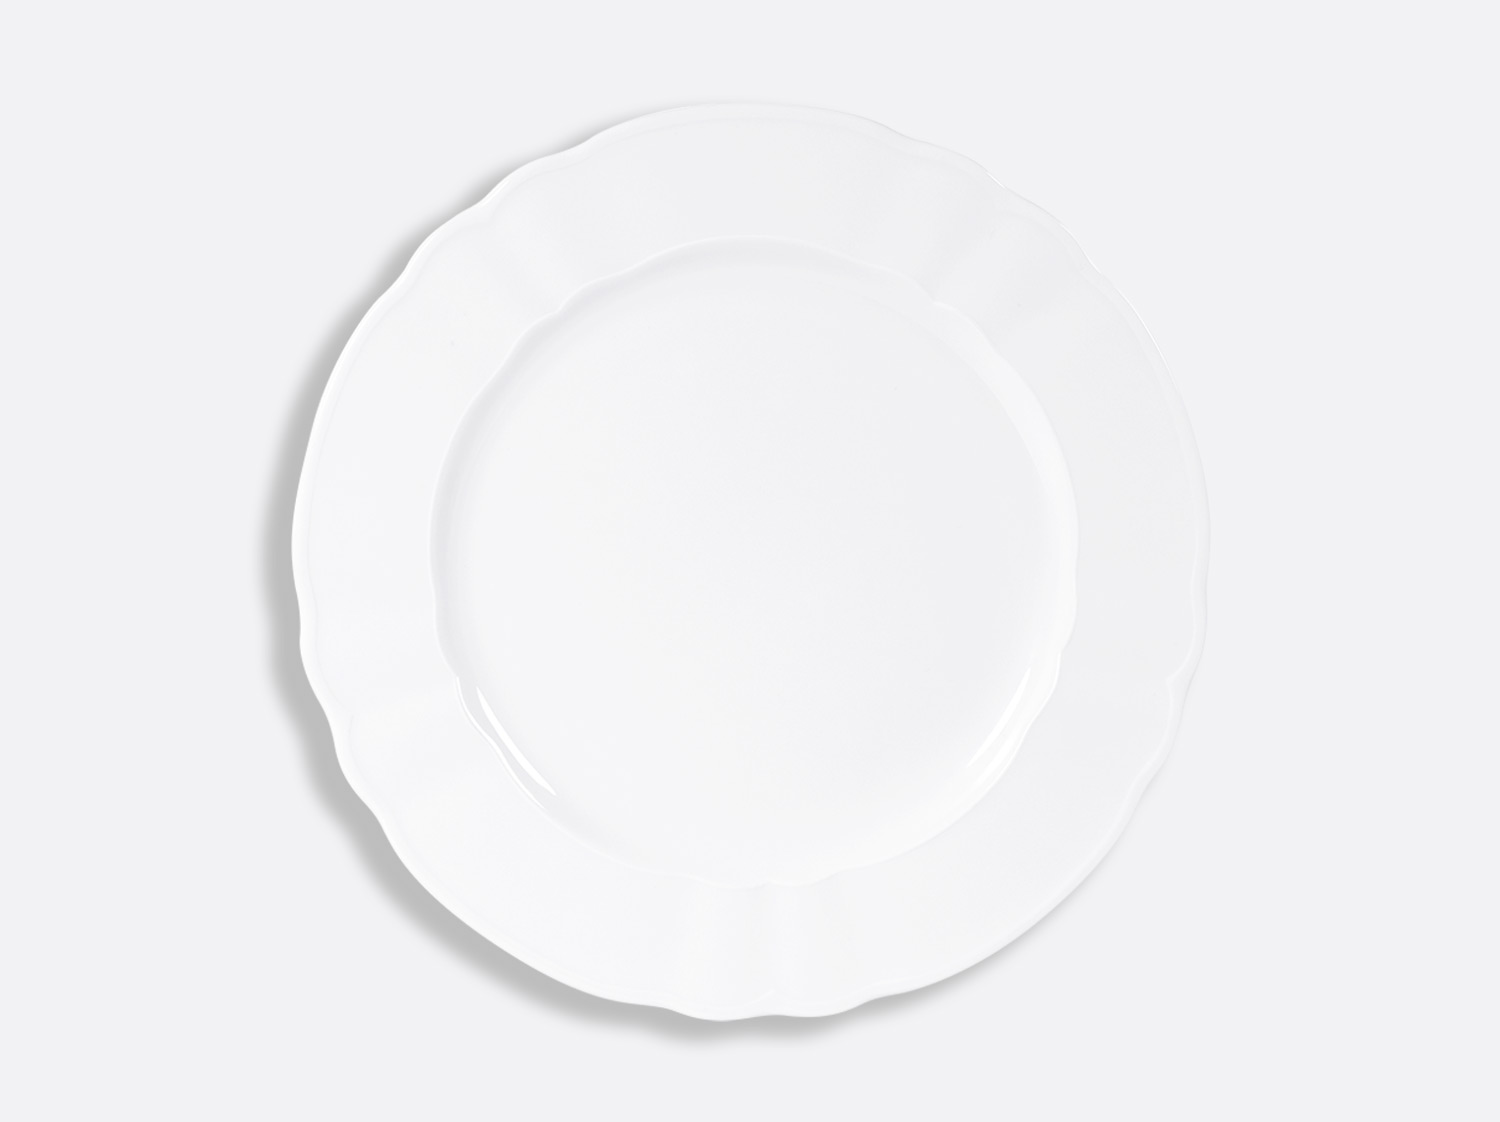 "China Plate 11.6"" of the collection L.15 blanc 